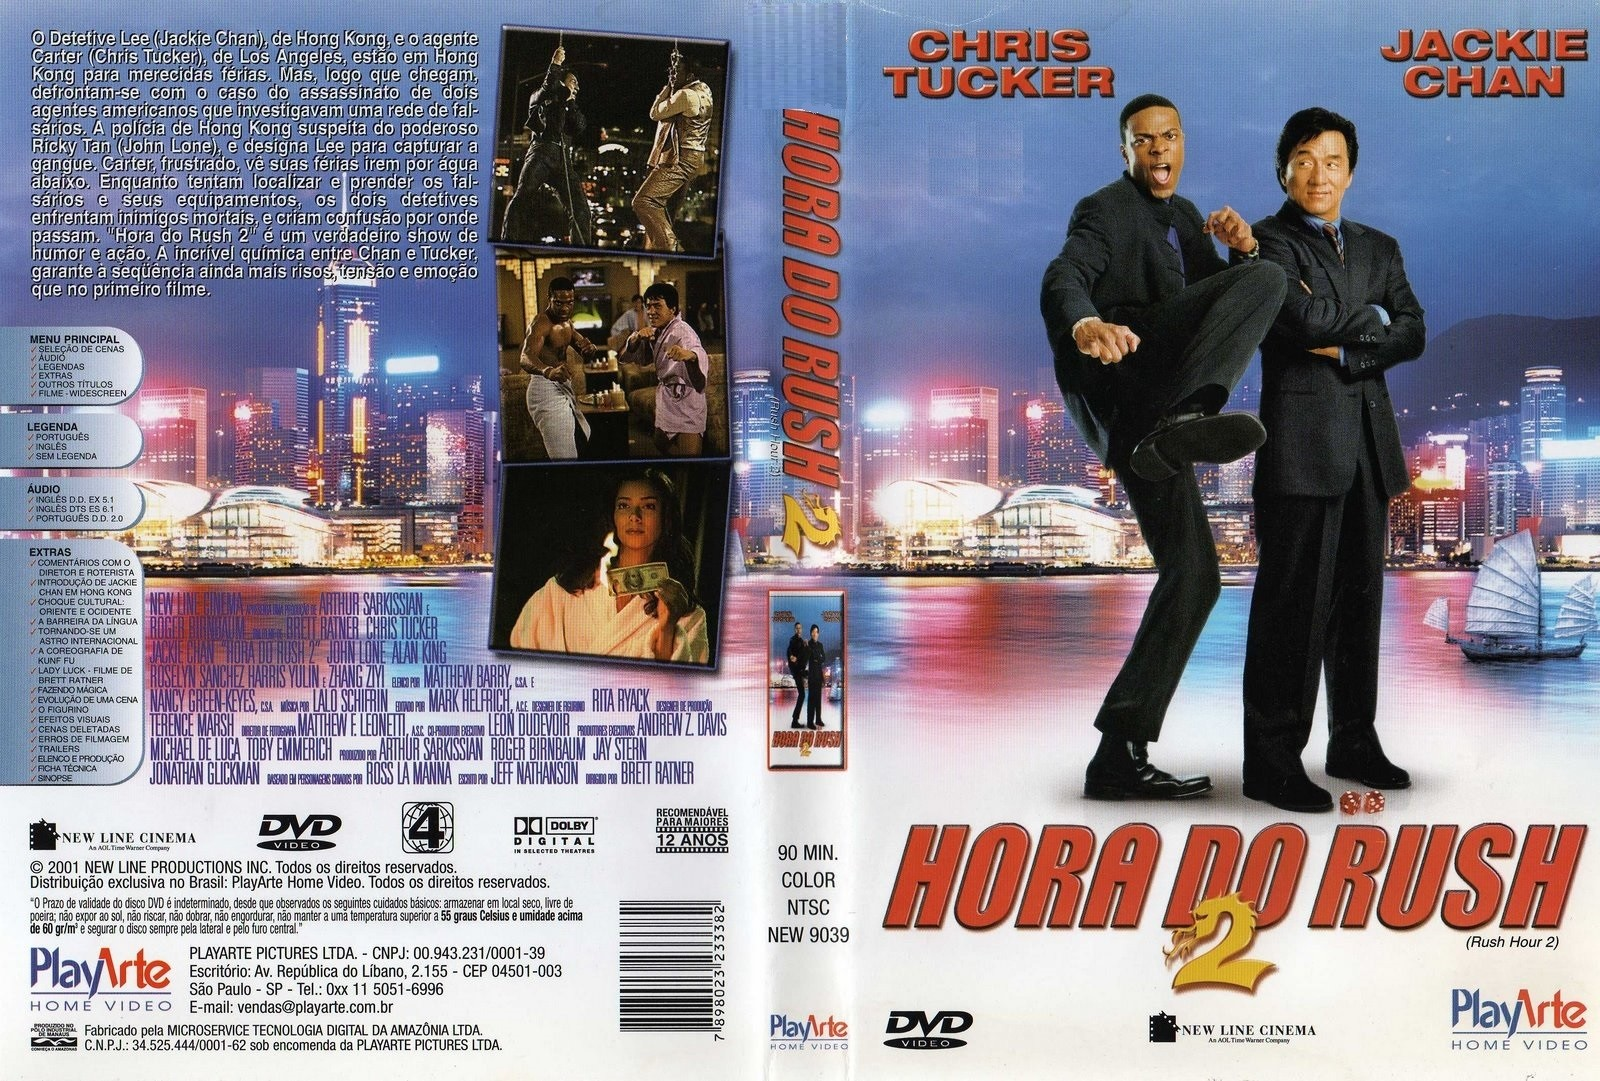 DVD LACRADO HORA DO RUSH 2 CHRIS TUCKER JACKIE CHAN